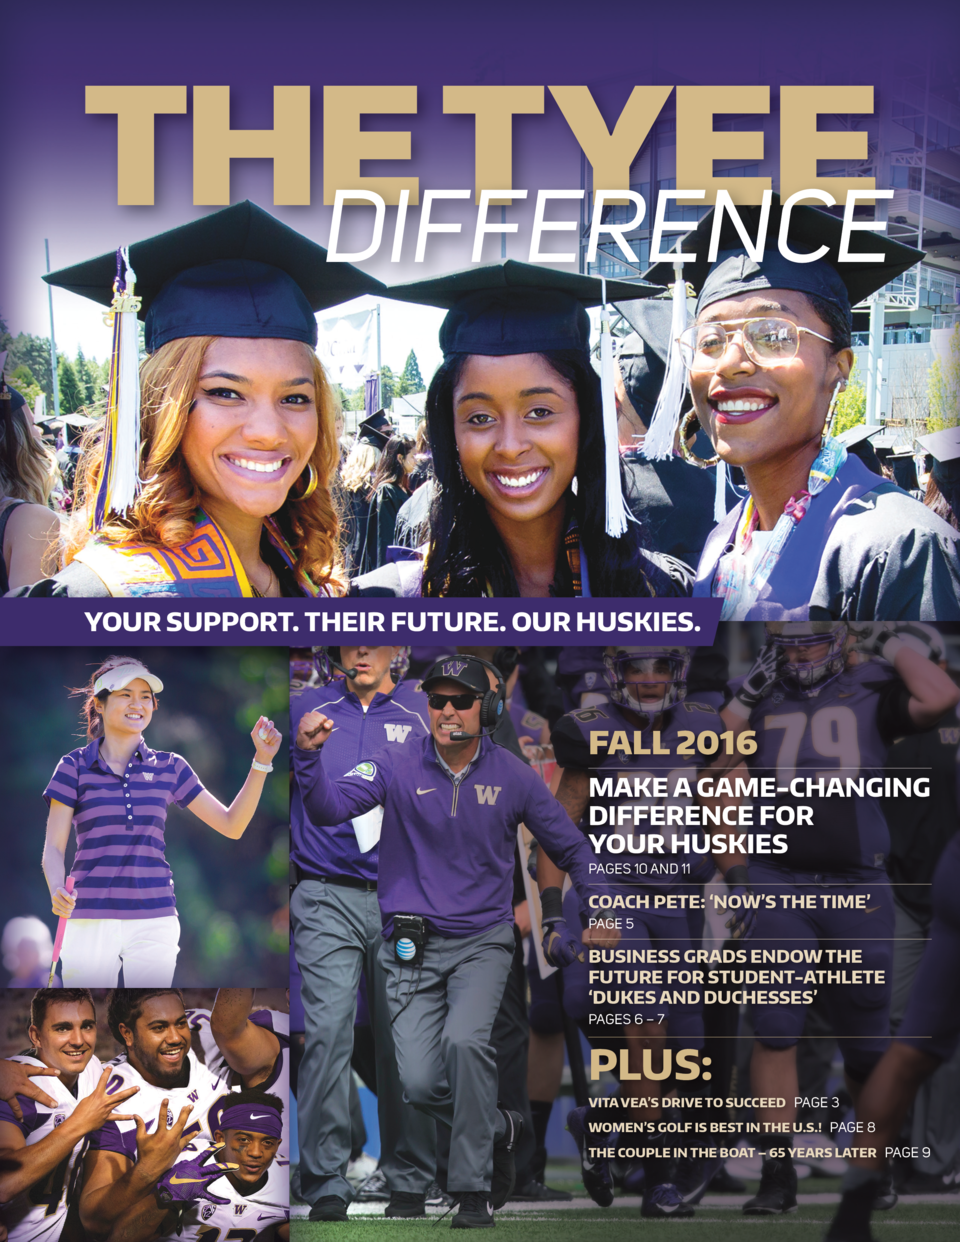 THE TYEE DIFFERENCE YOUR SUPPORT. THEIR FUTURE. OUR HUSKIES.  FALL 2016 MAKE A GAME-CHANGING DIFFERENCE FOR YOUR HUSKIES P...